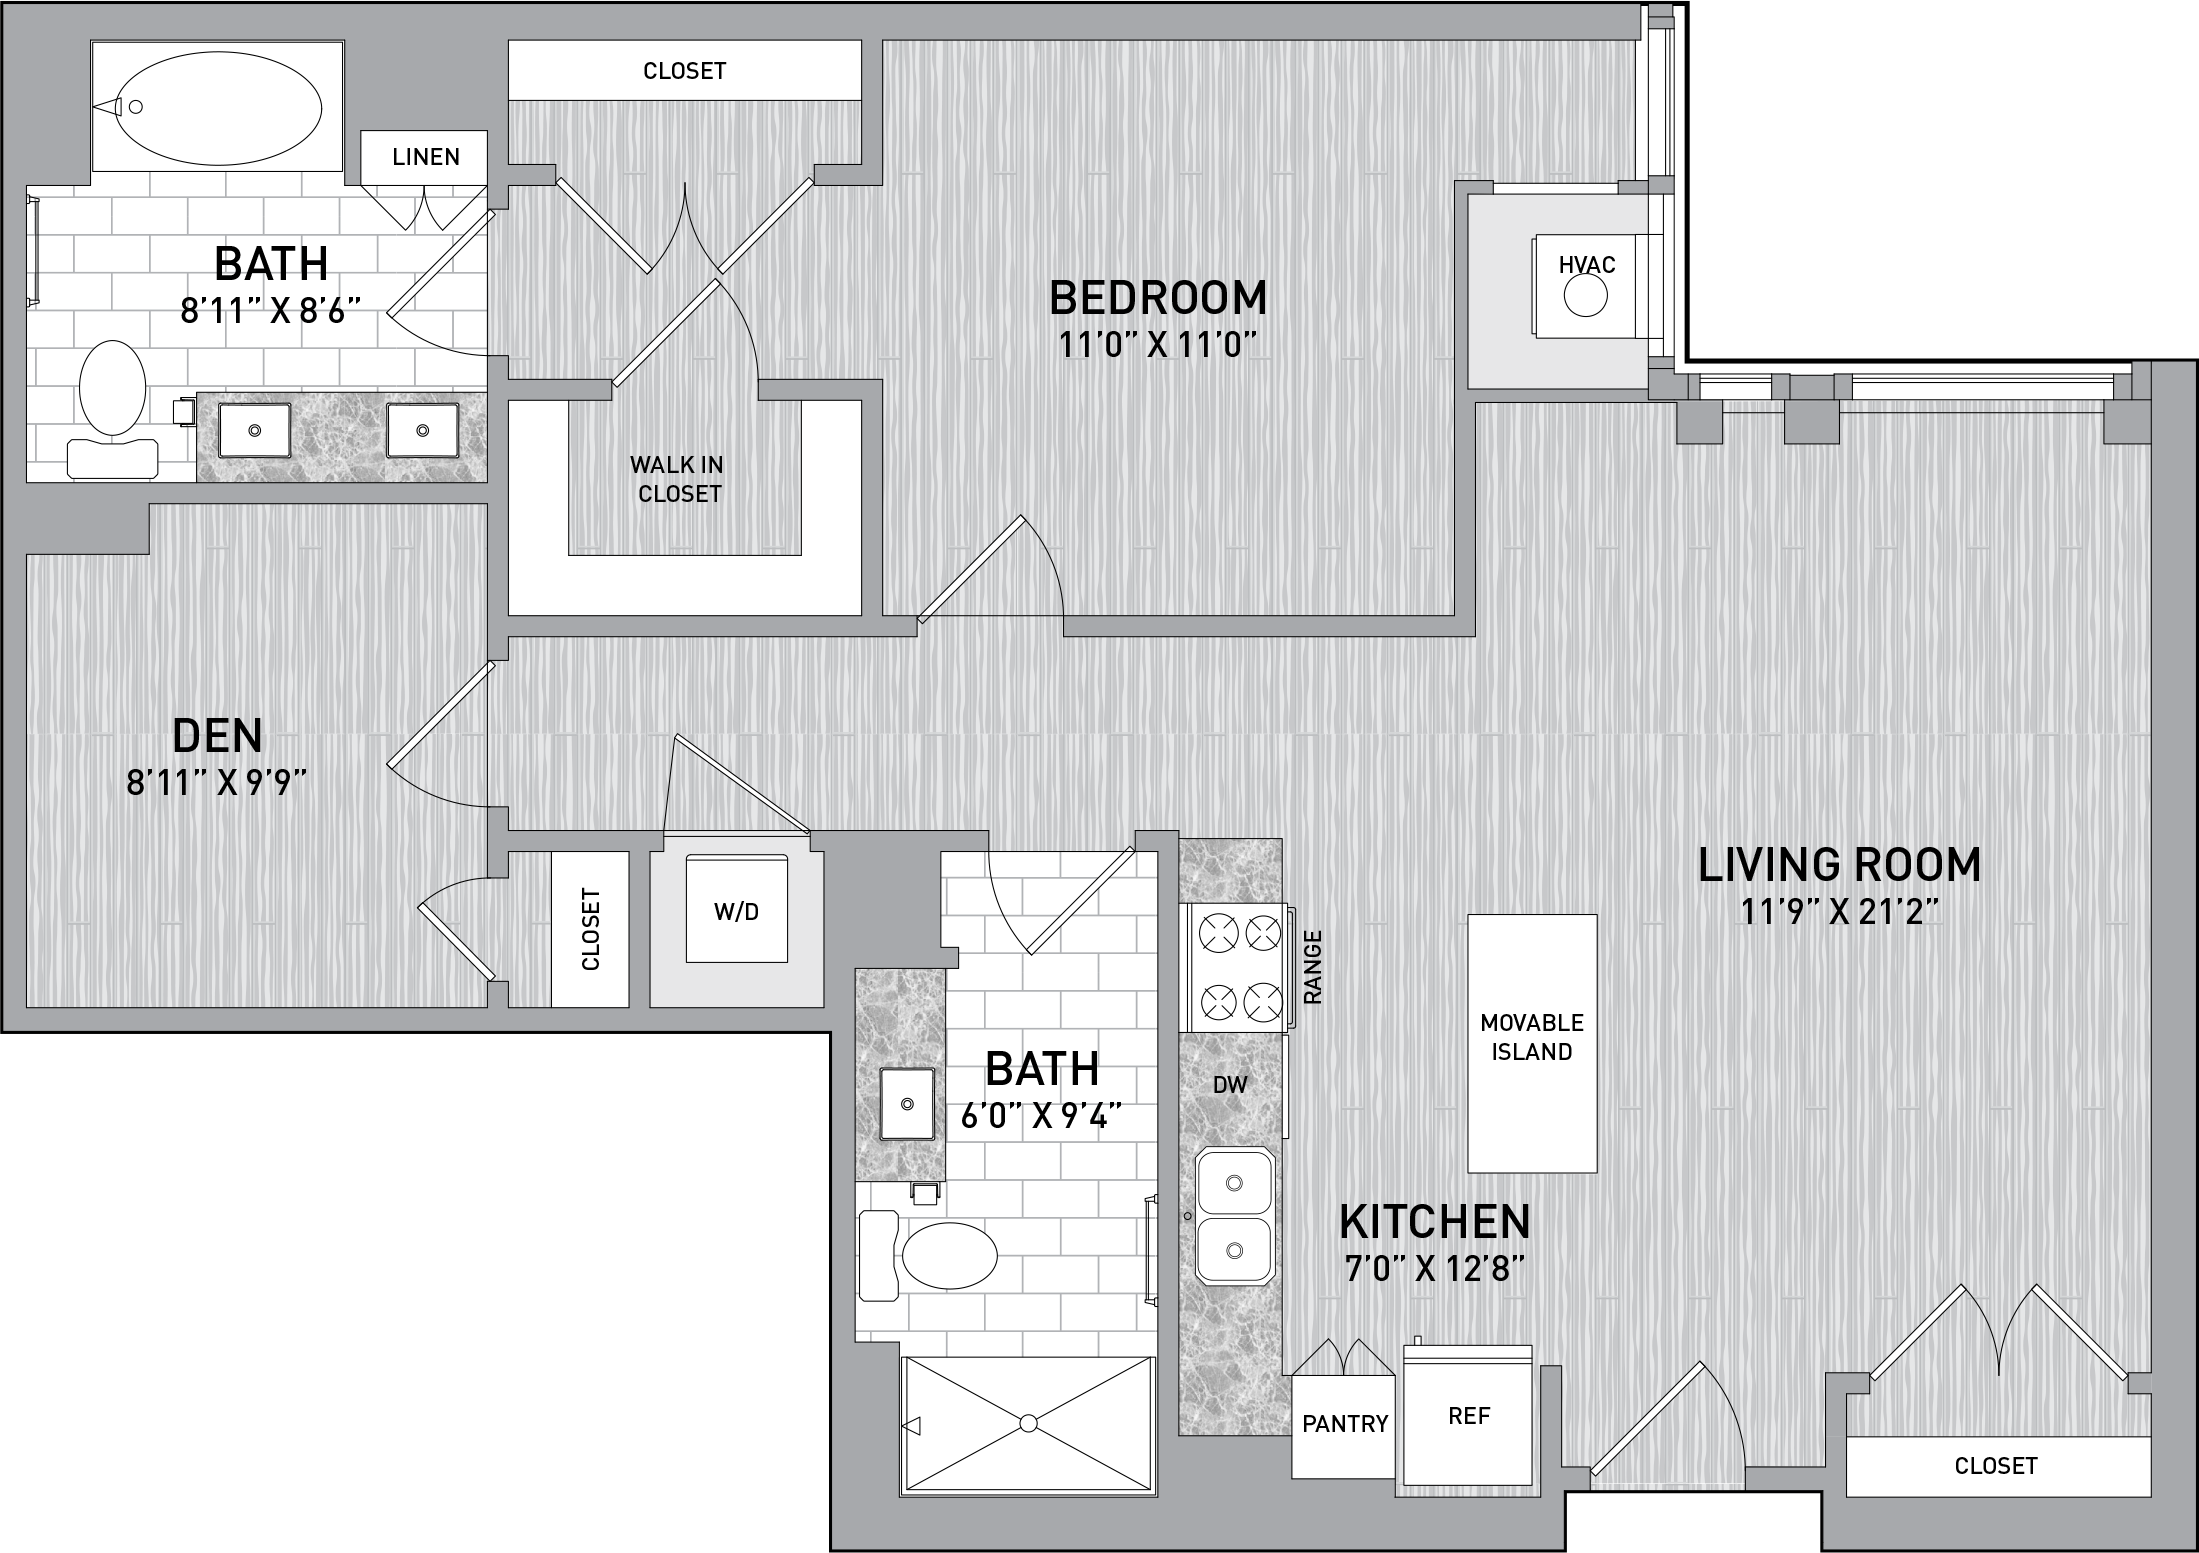 floorplan image of unit id 323